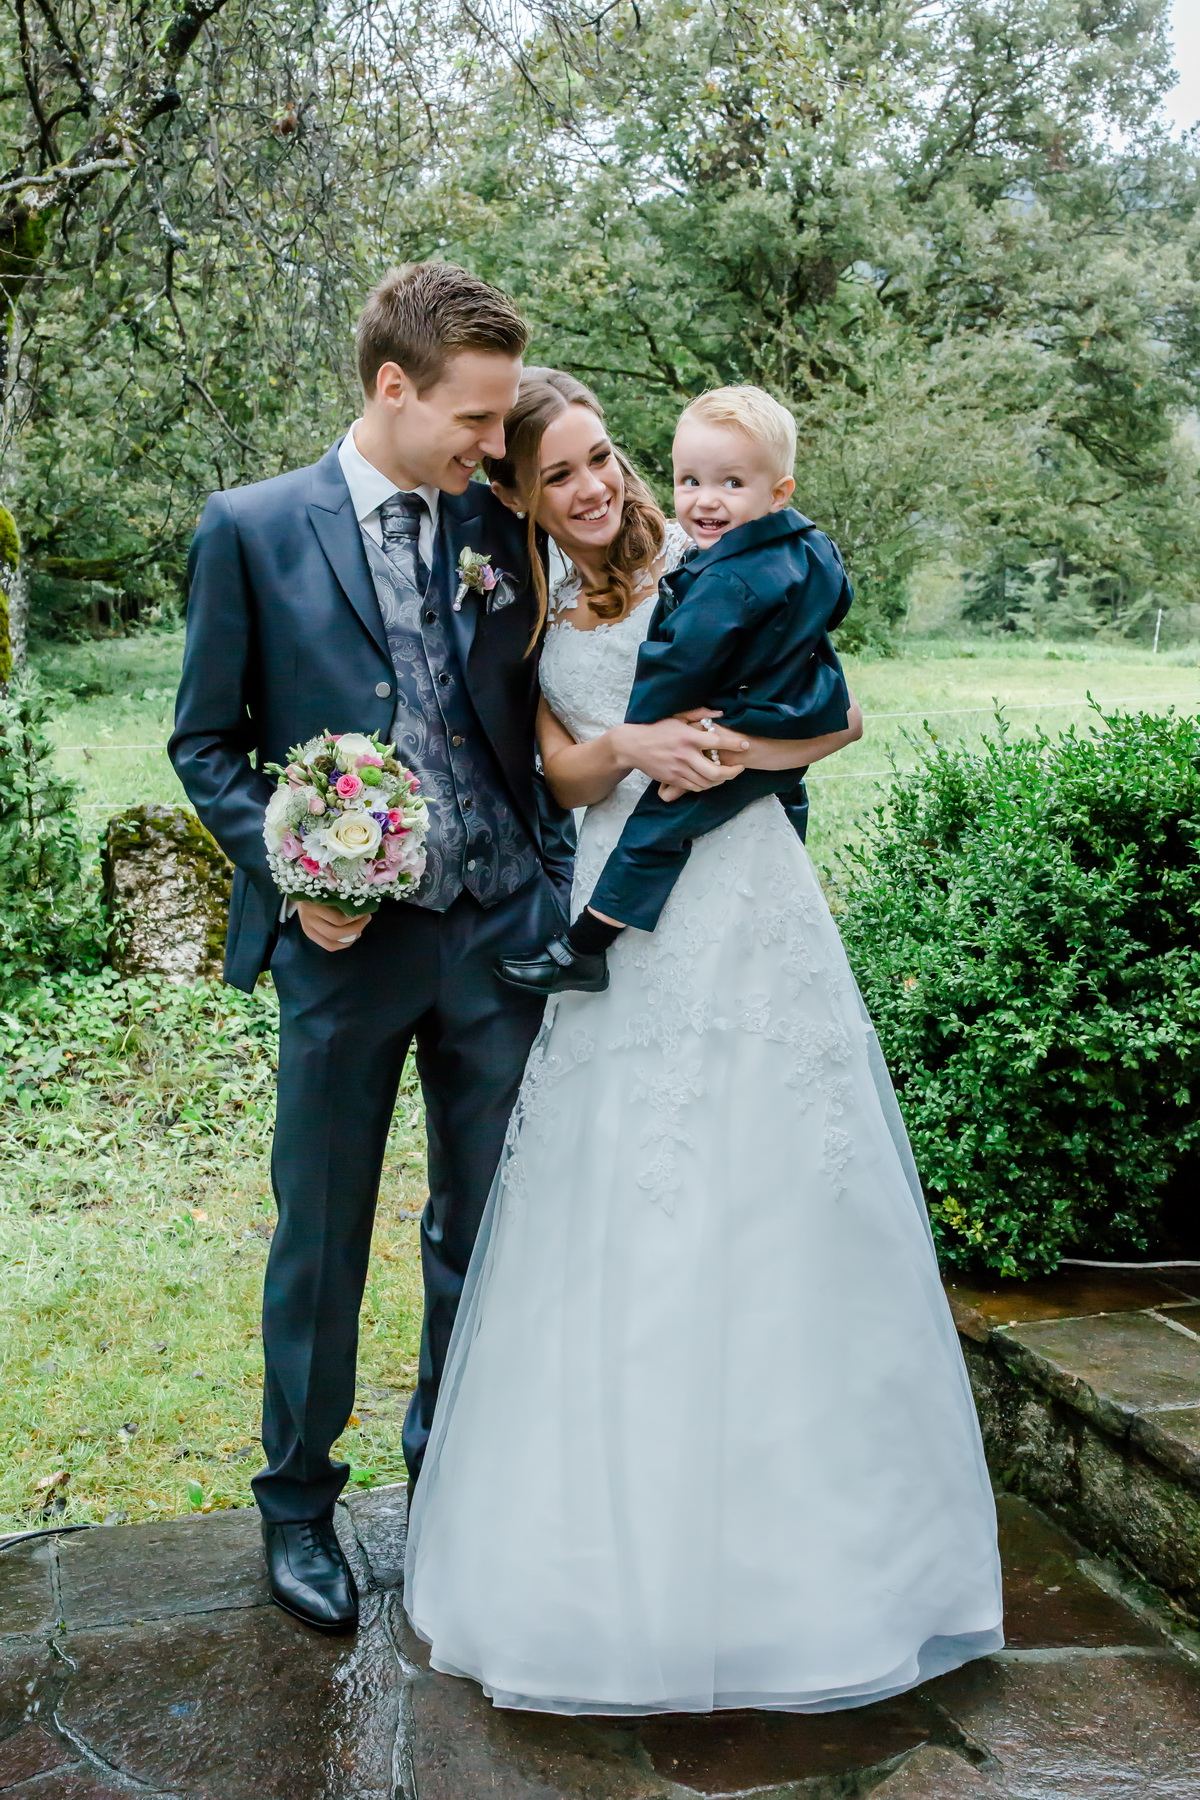 Claudia Sittig Photography - Couple - Hochzeit  Wedding - Selina und Richard 43